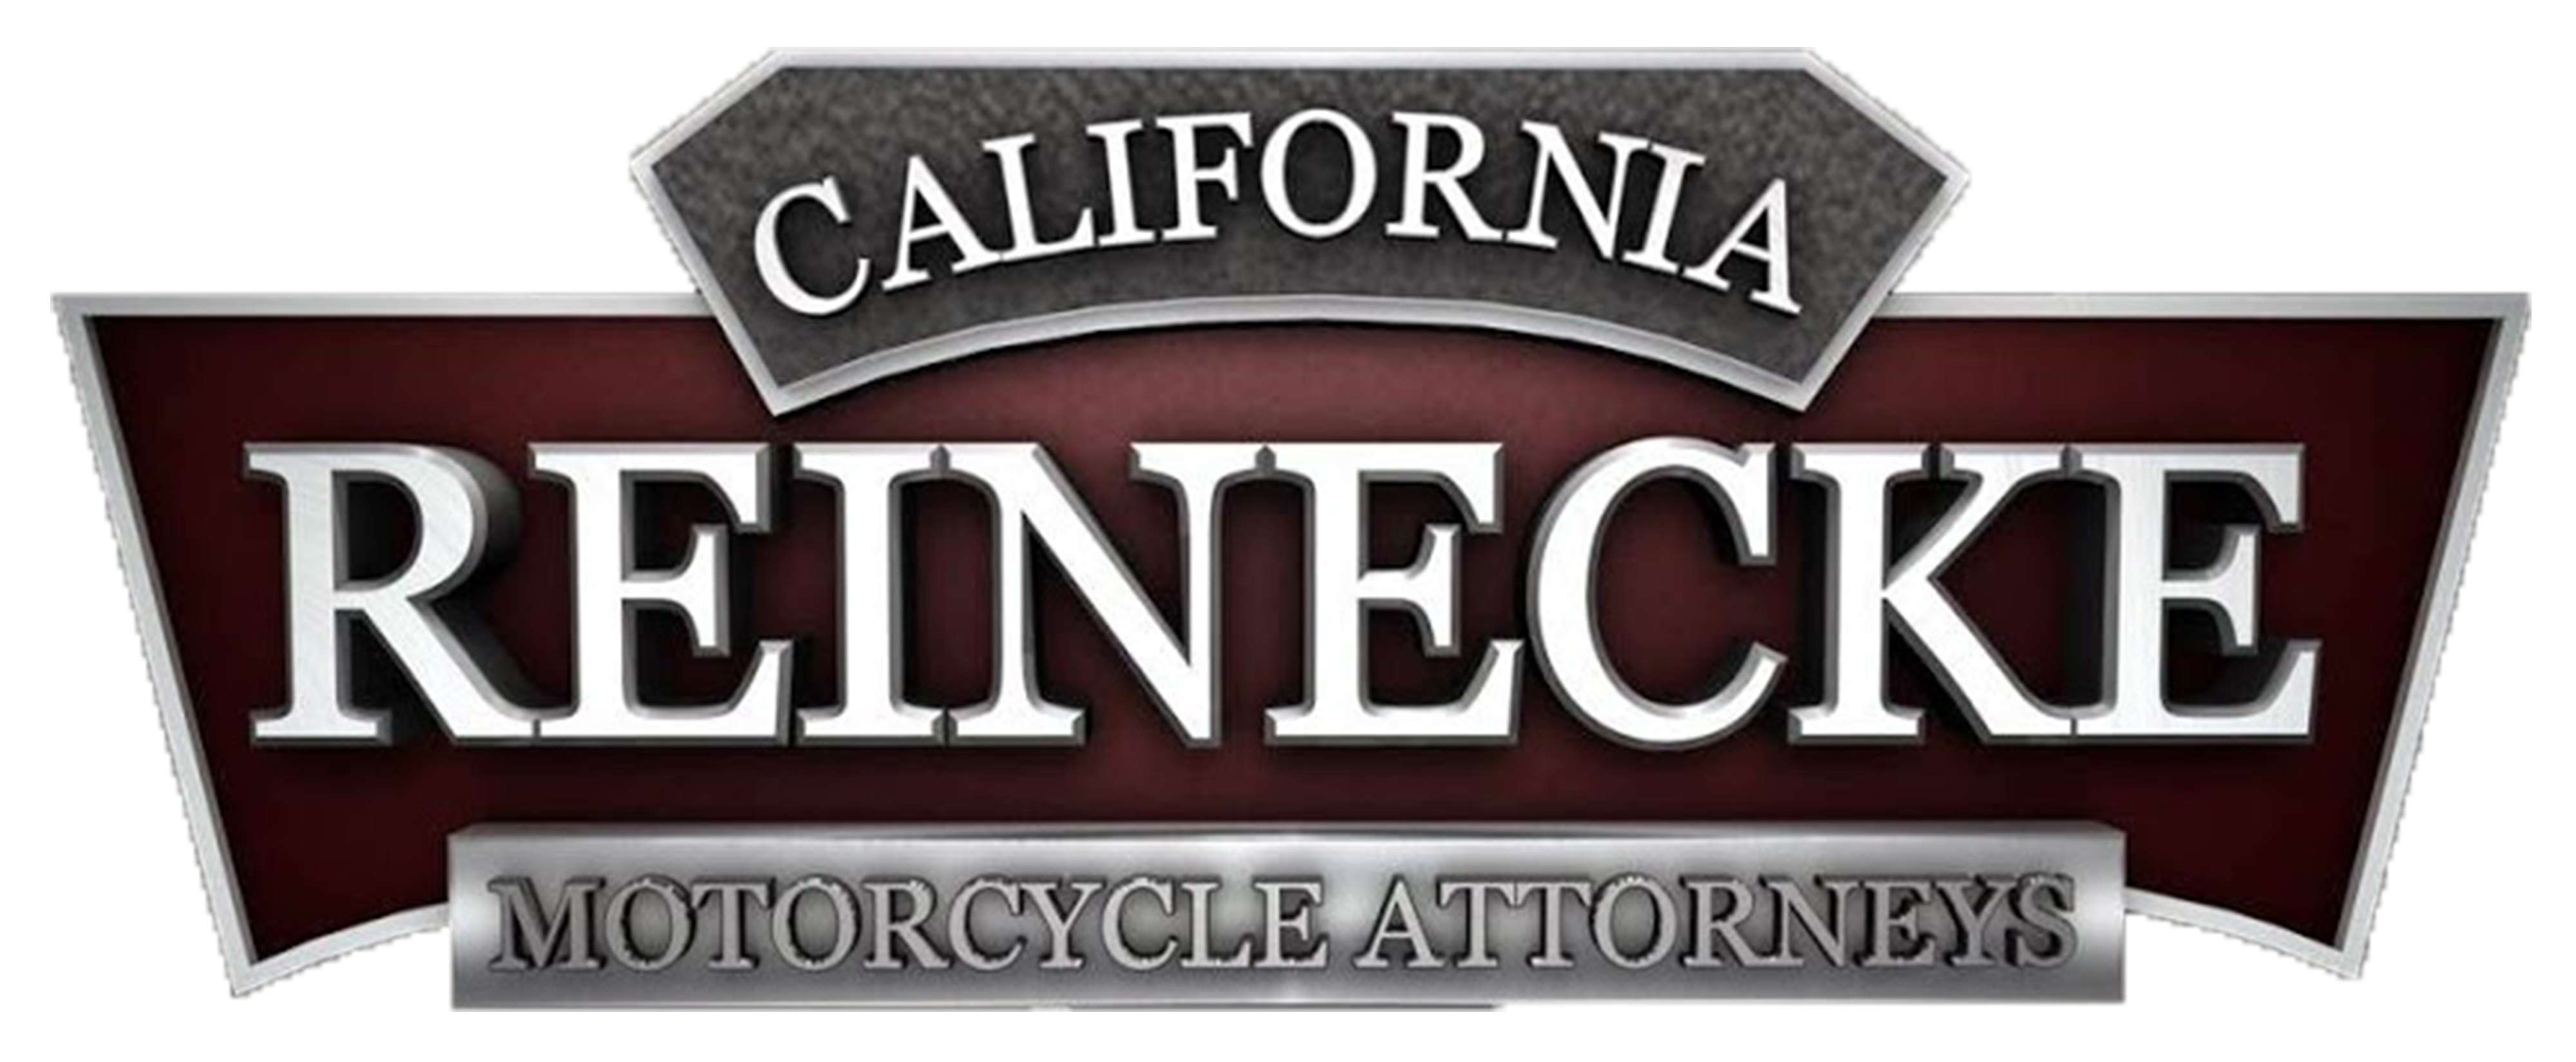 Motorcycle Accident Injury Lawyers | The Reinecke Law Firm